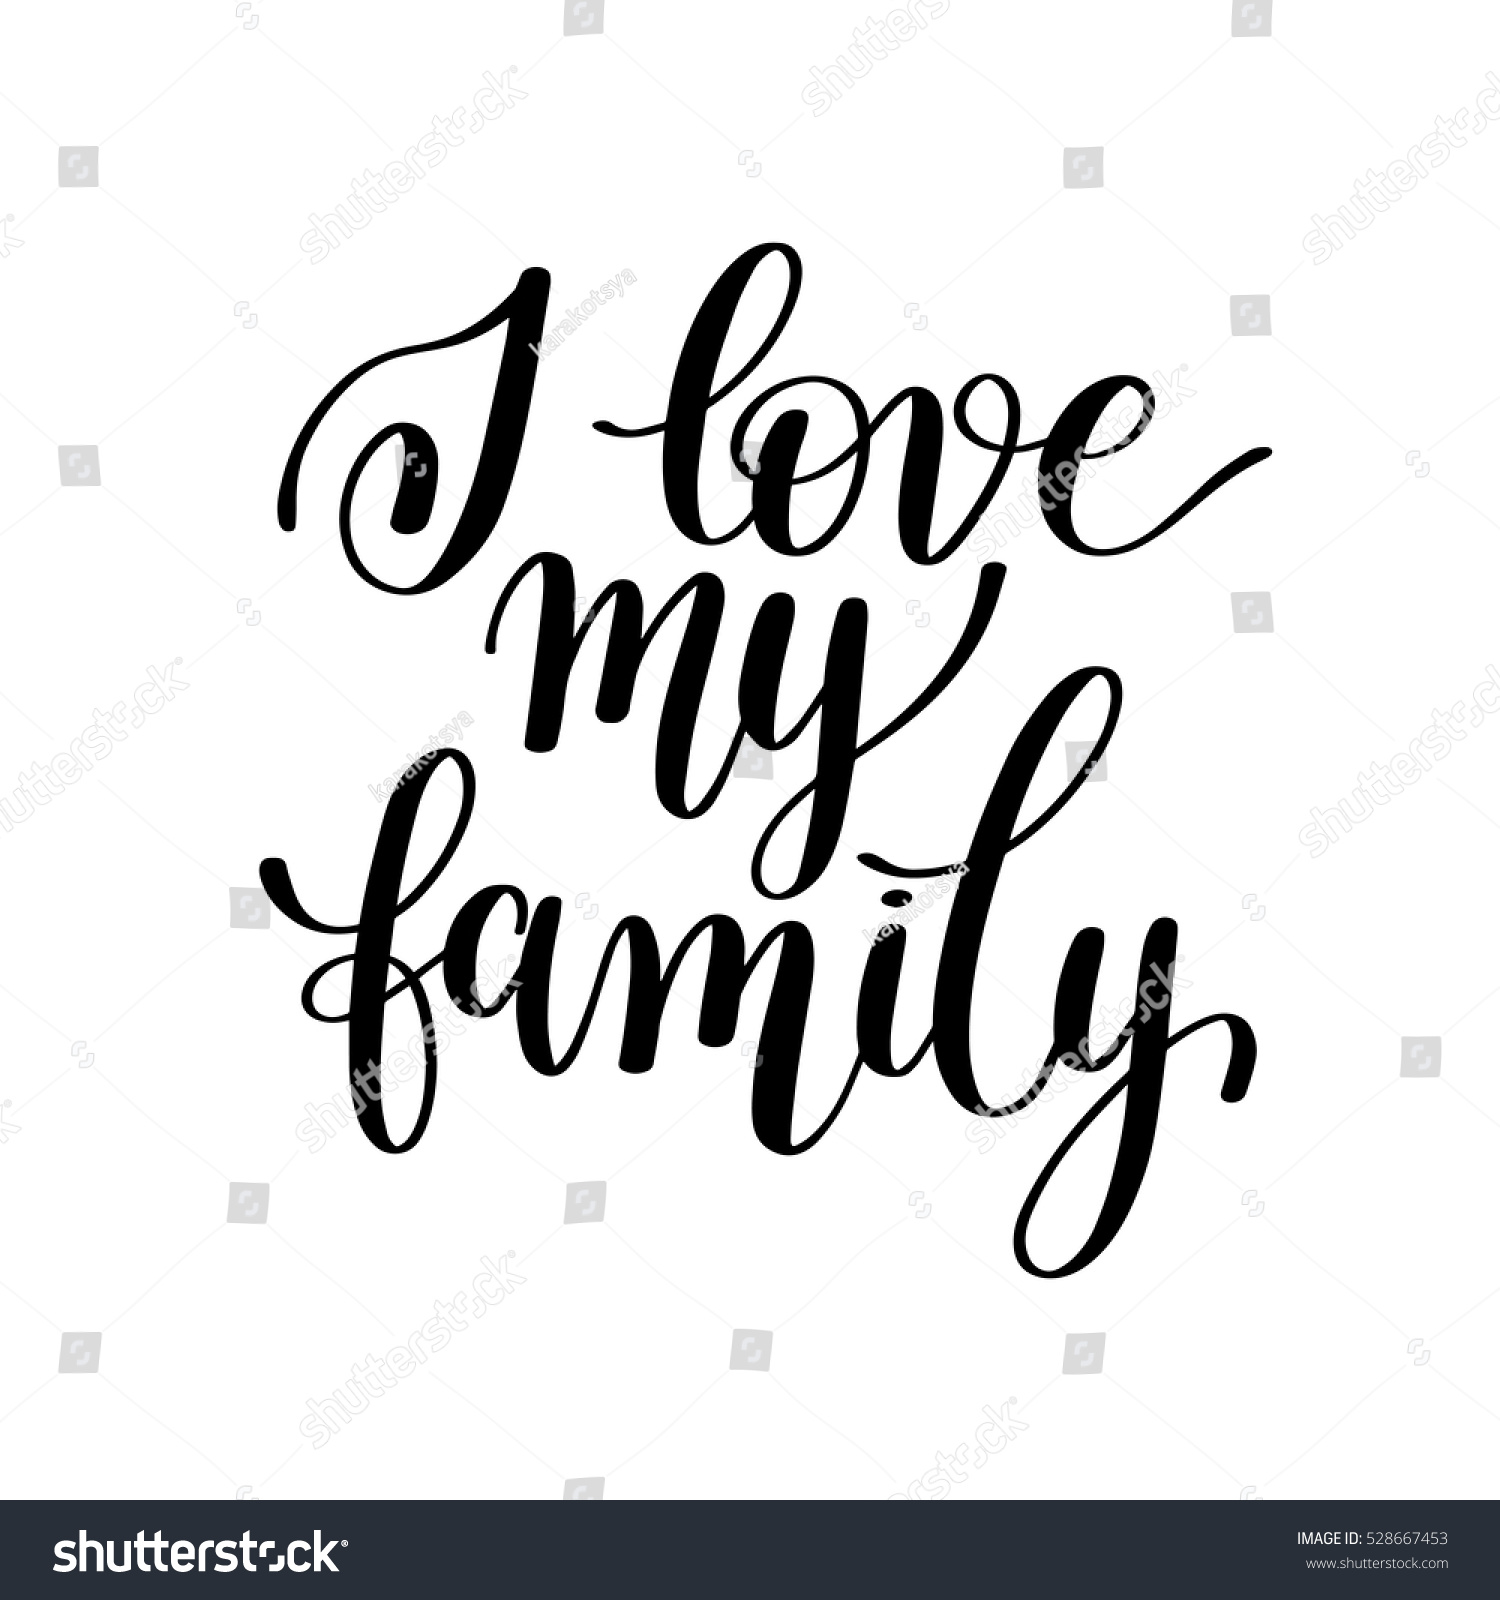 I love my family handwritten calligraphy positive quote to your photo poster greeting card